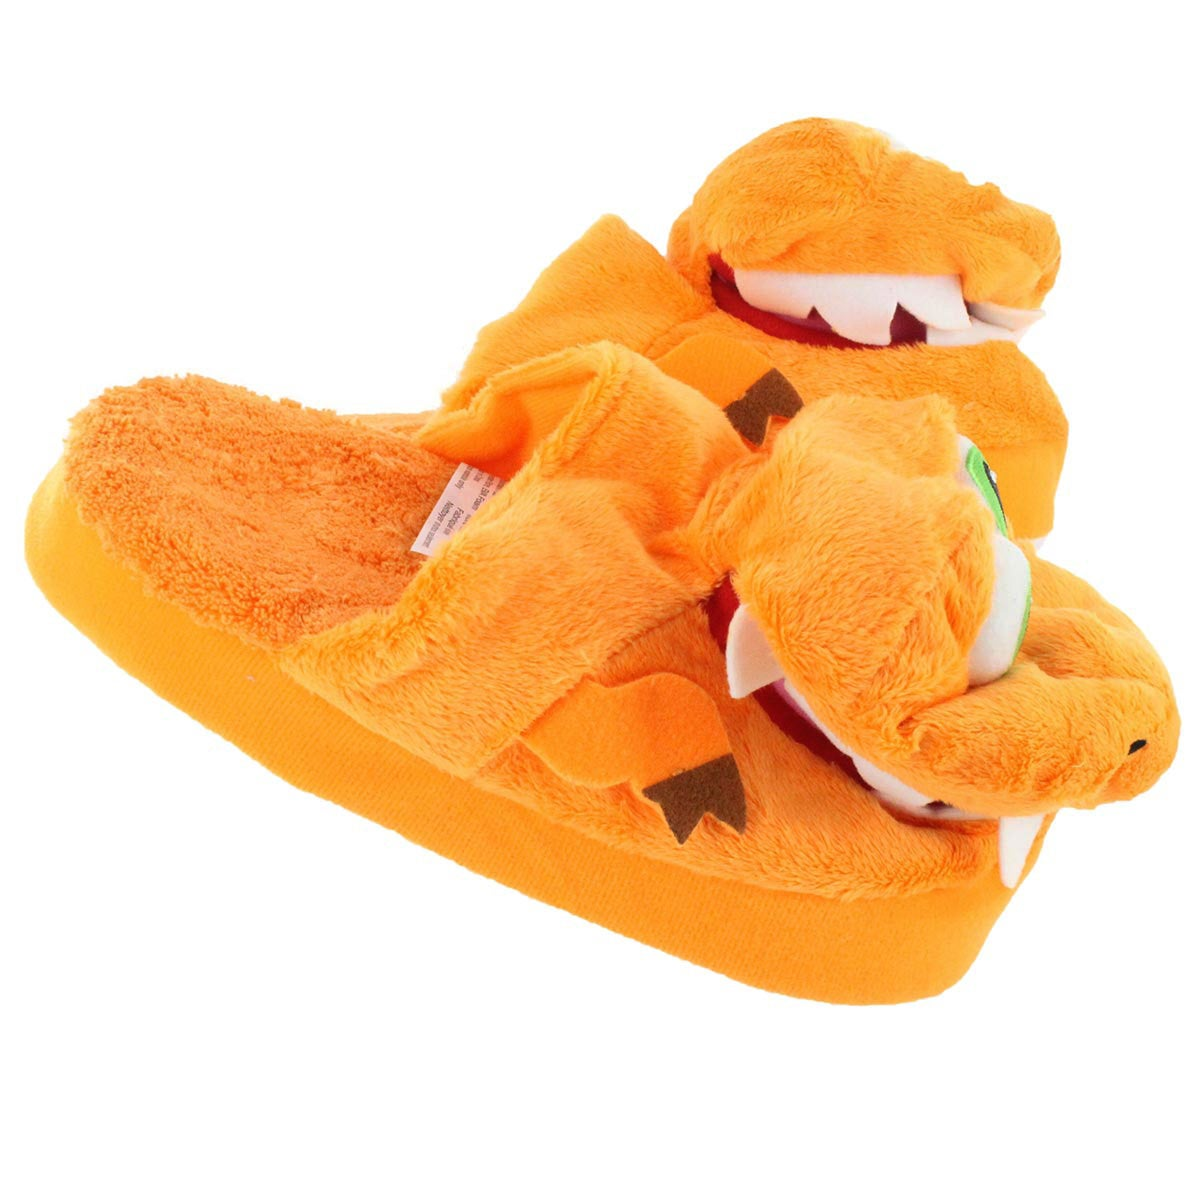 Kds Stompeez T-Rex orange slipper